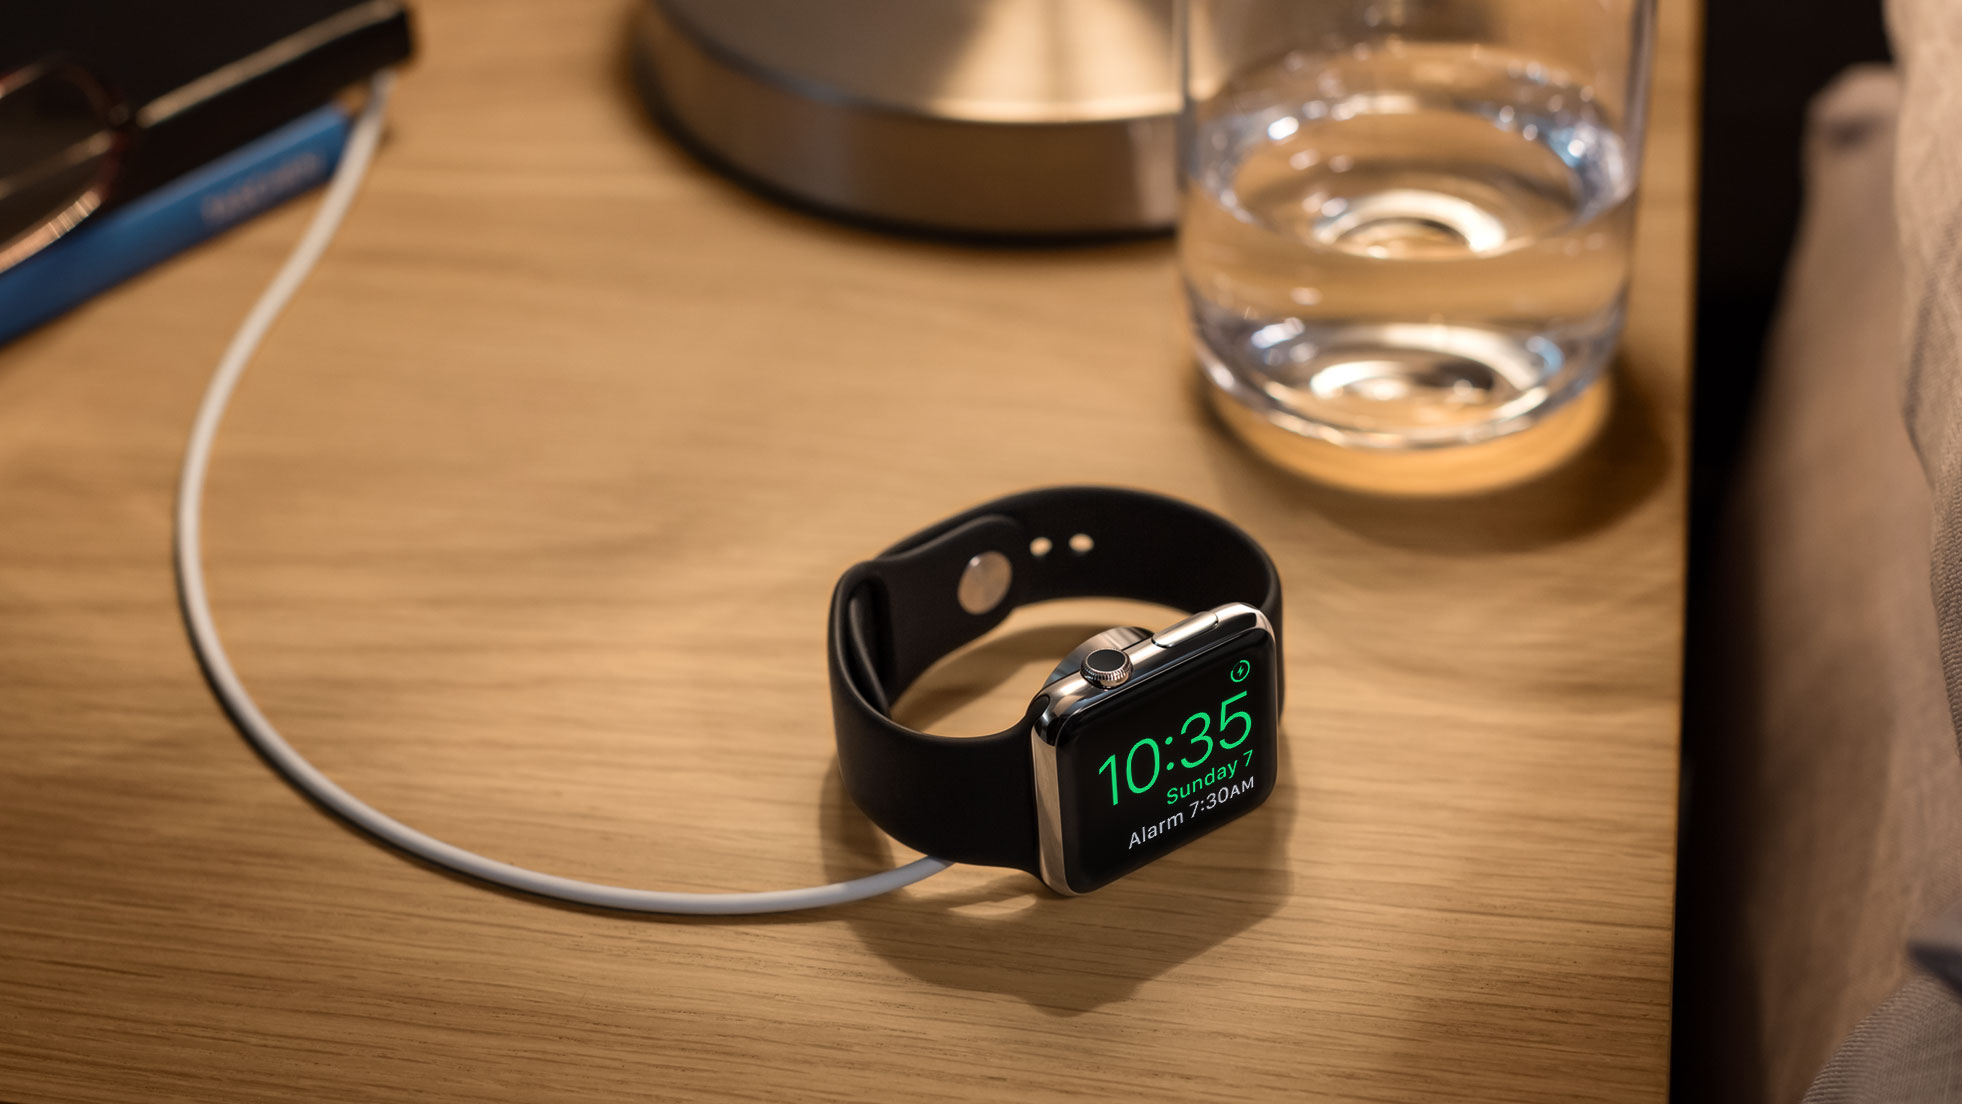 watchOS 2 nightstand mode